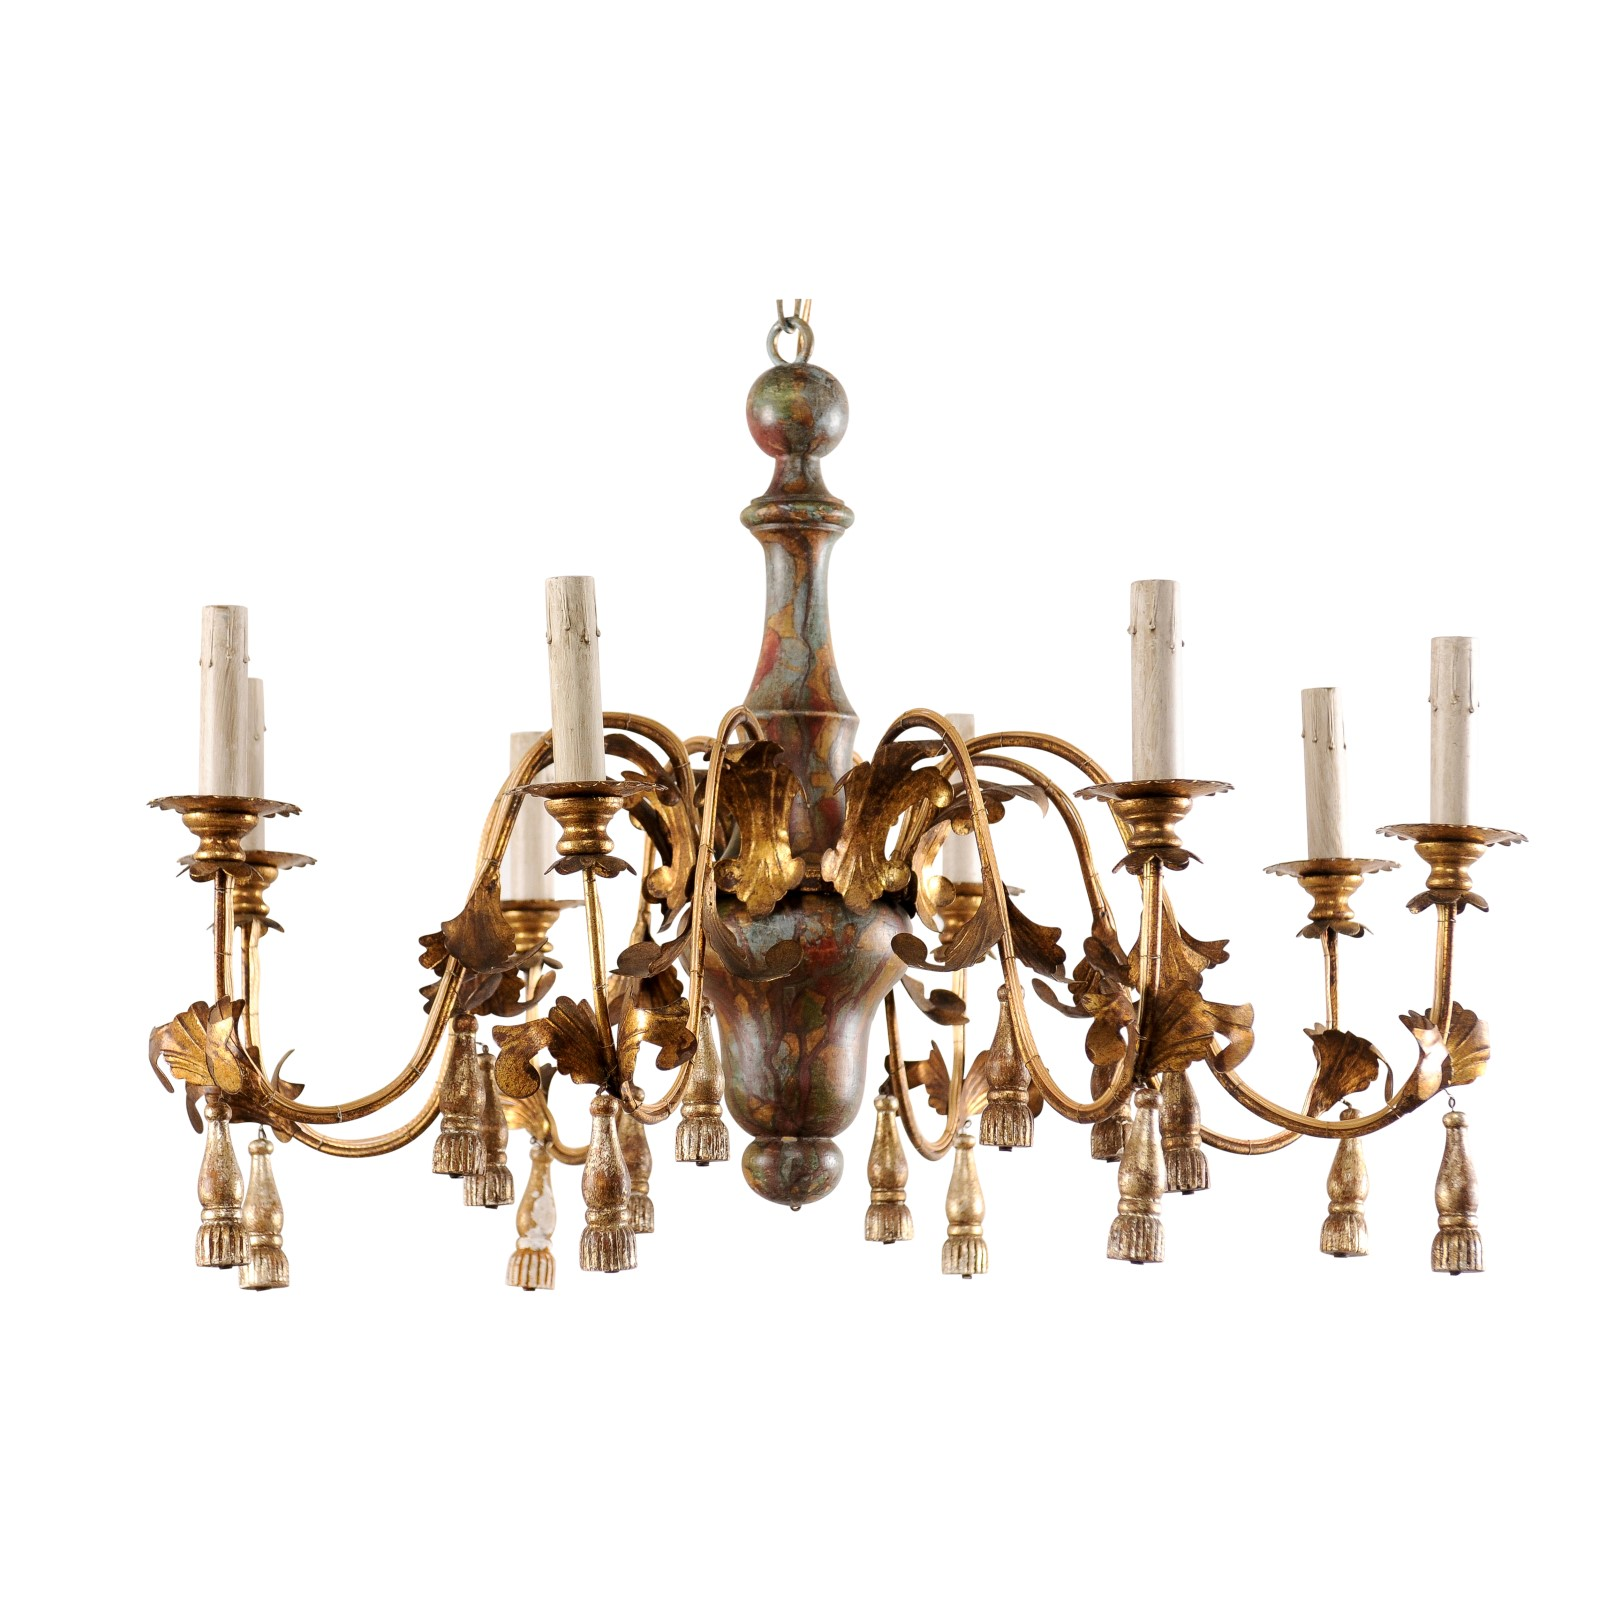 An Italian Mid-20th C. Chandelier